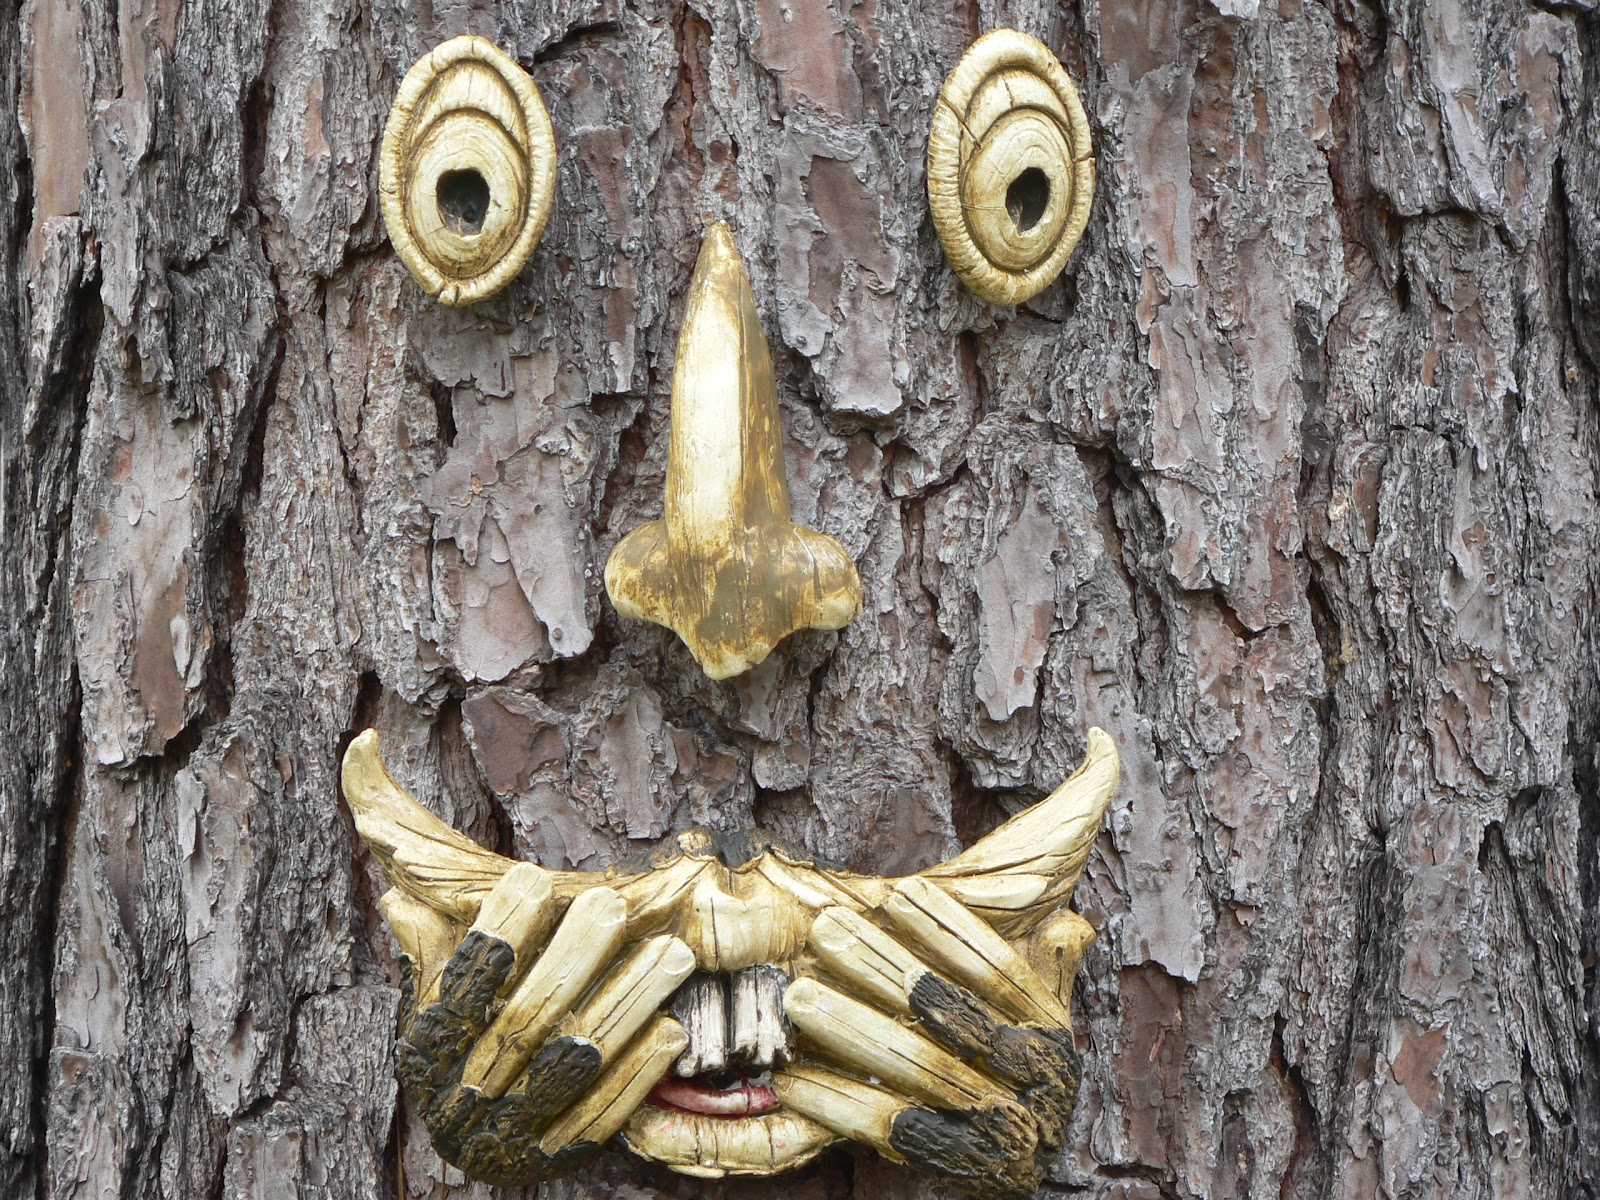 It Was A Present From Lord M And As I Was Hanging It, I Thought I Wonder If  Anyone Makes A Spooky Tree Face. So I Did A Little Internet Research And ...